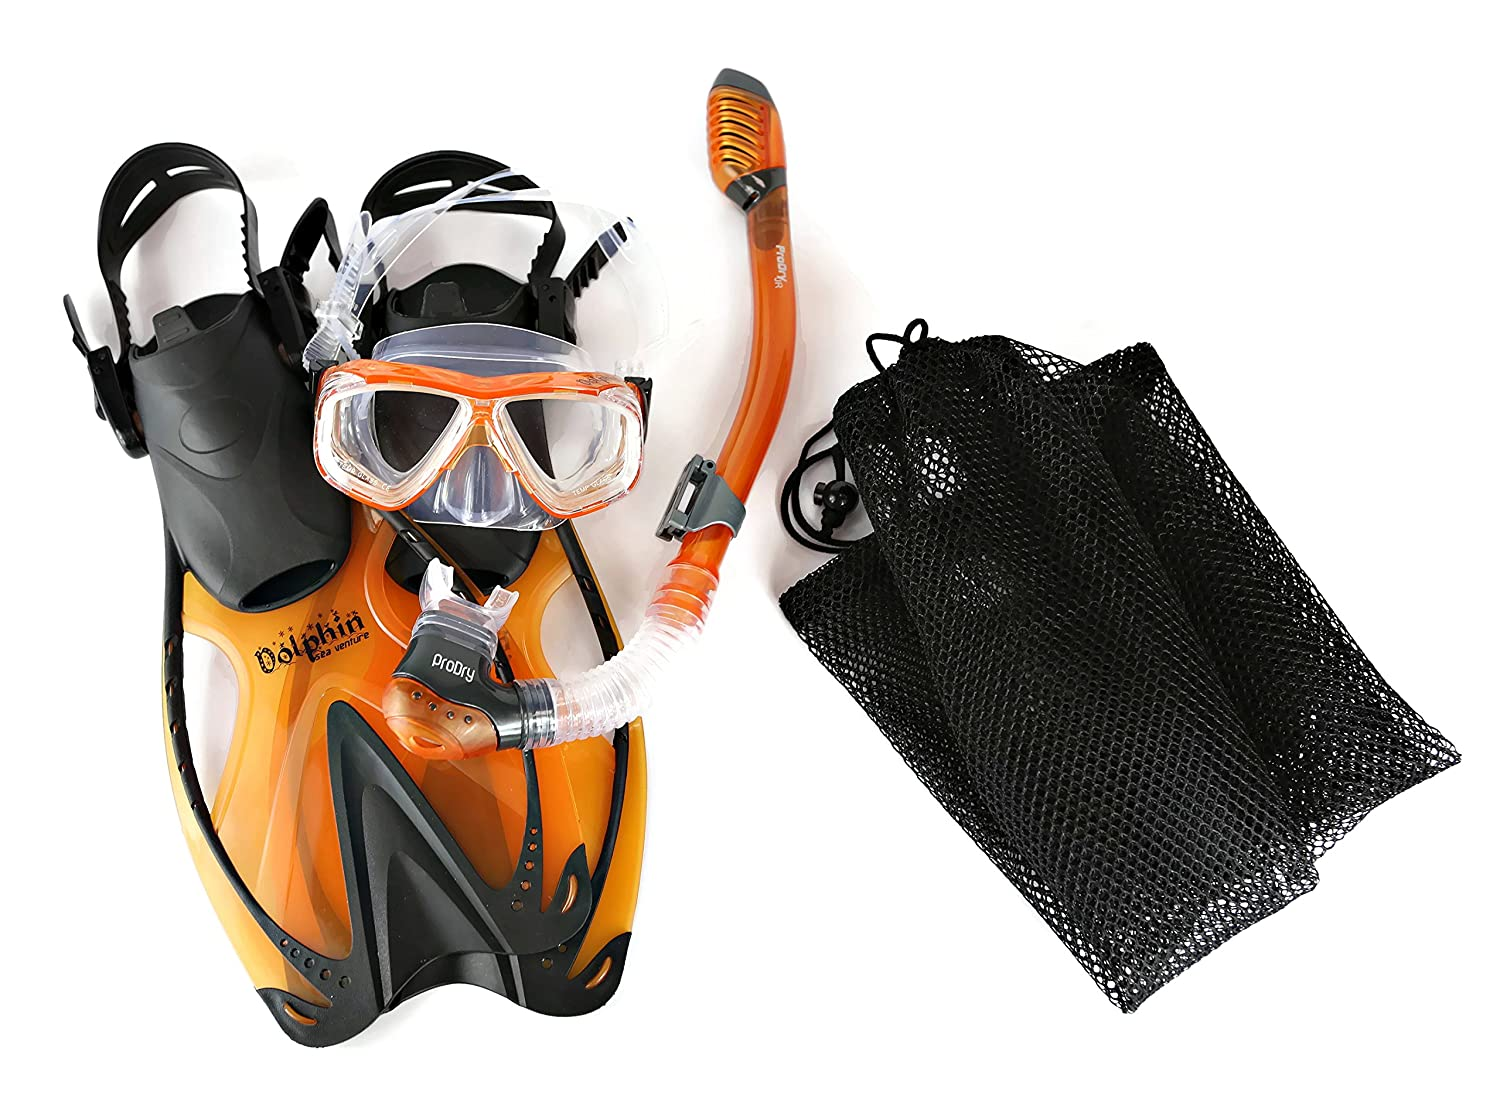 好きに Junior Snorkeling B01CDJRJ2M Scuba Diving Mask DRY Snorkeling Junior Snorkel Fins Set for Kids-Orange-LGXLG 141[並行輸入] B01CDJRJ2M, e-ショップ ブルーラグーン:cc8d4e93 --- agiven.com